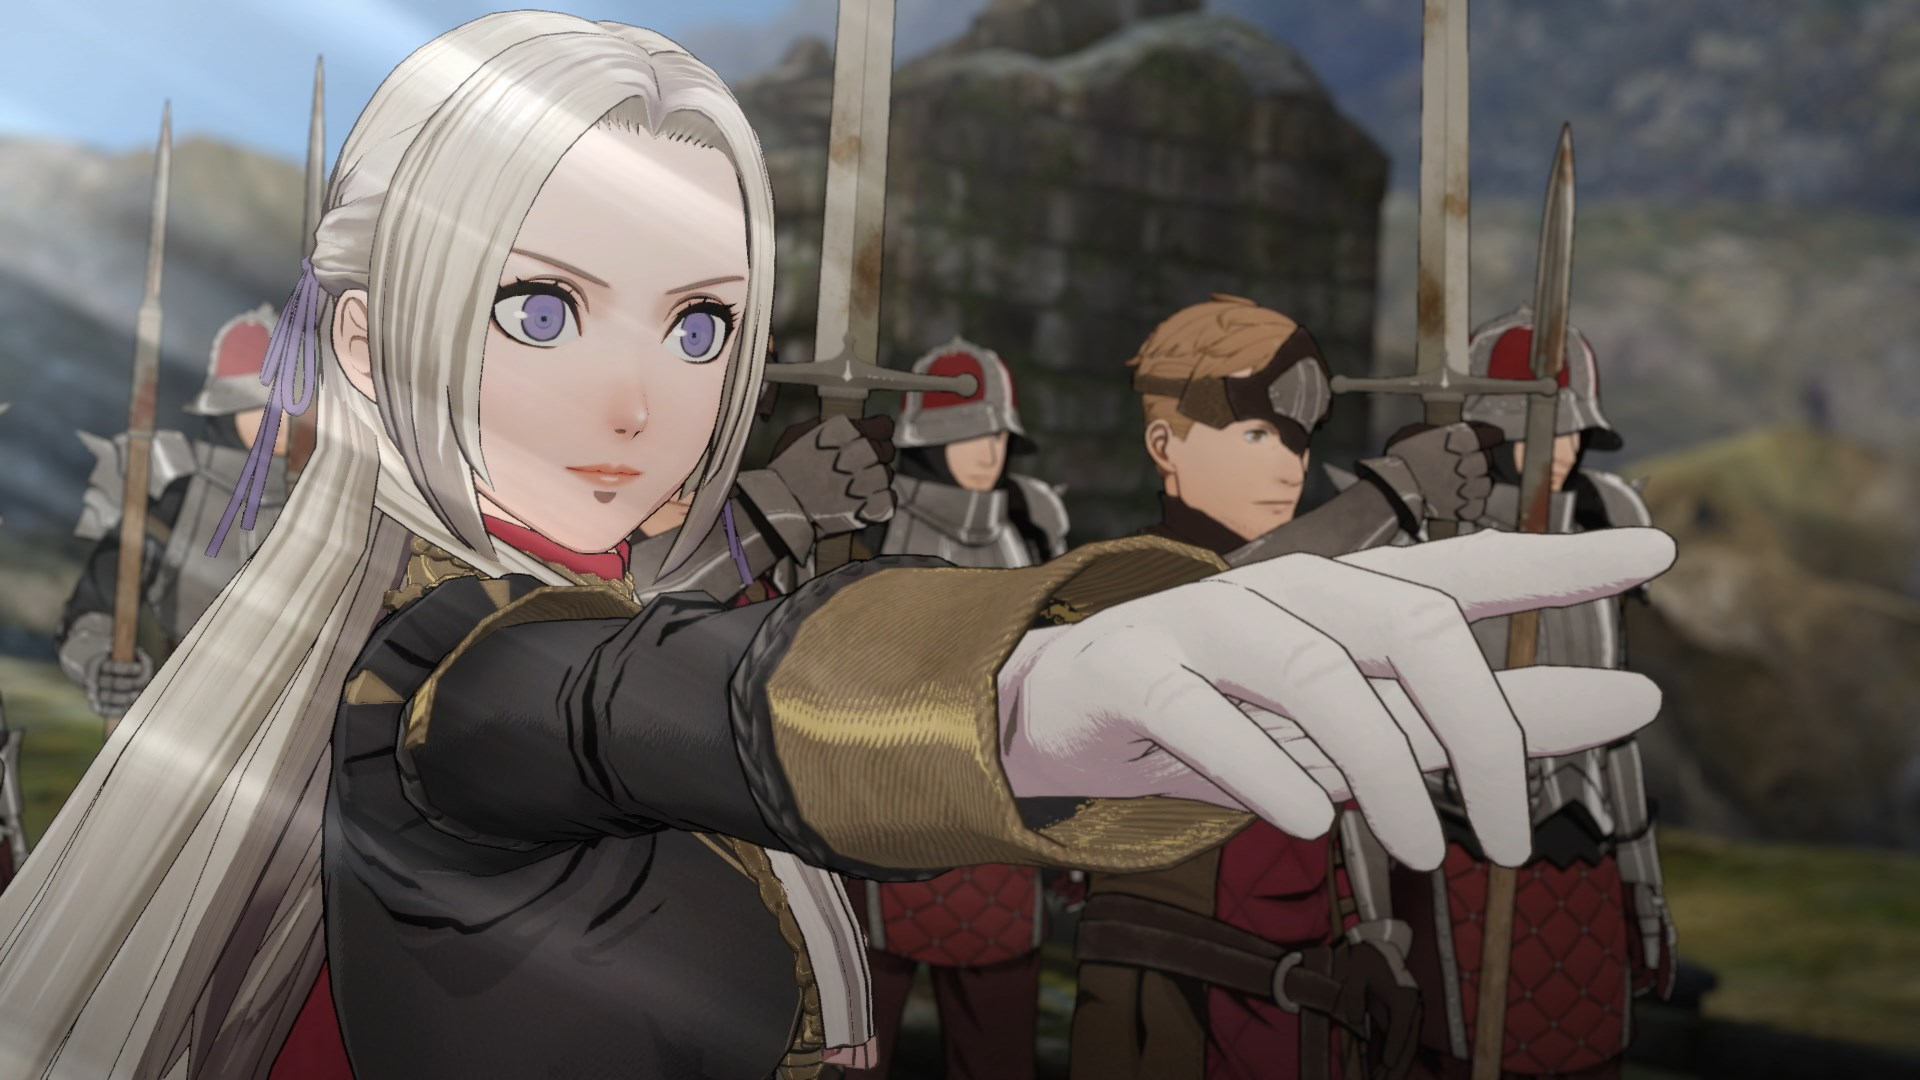 Fire Emblem's best house is Black Eagles, which barely likes